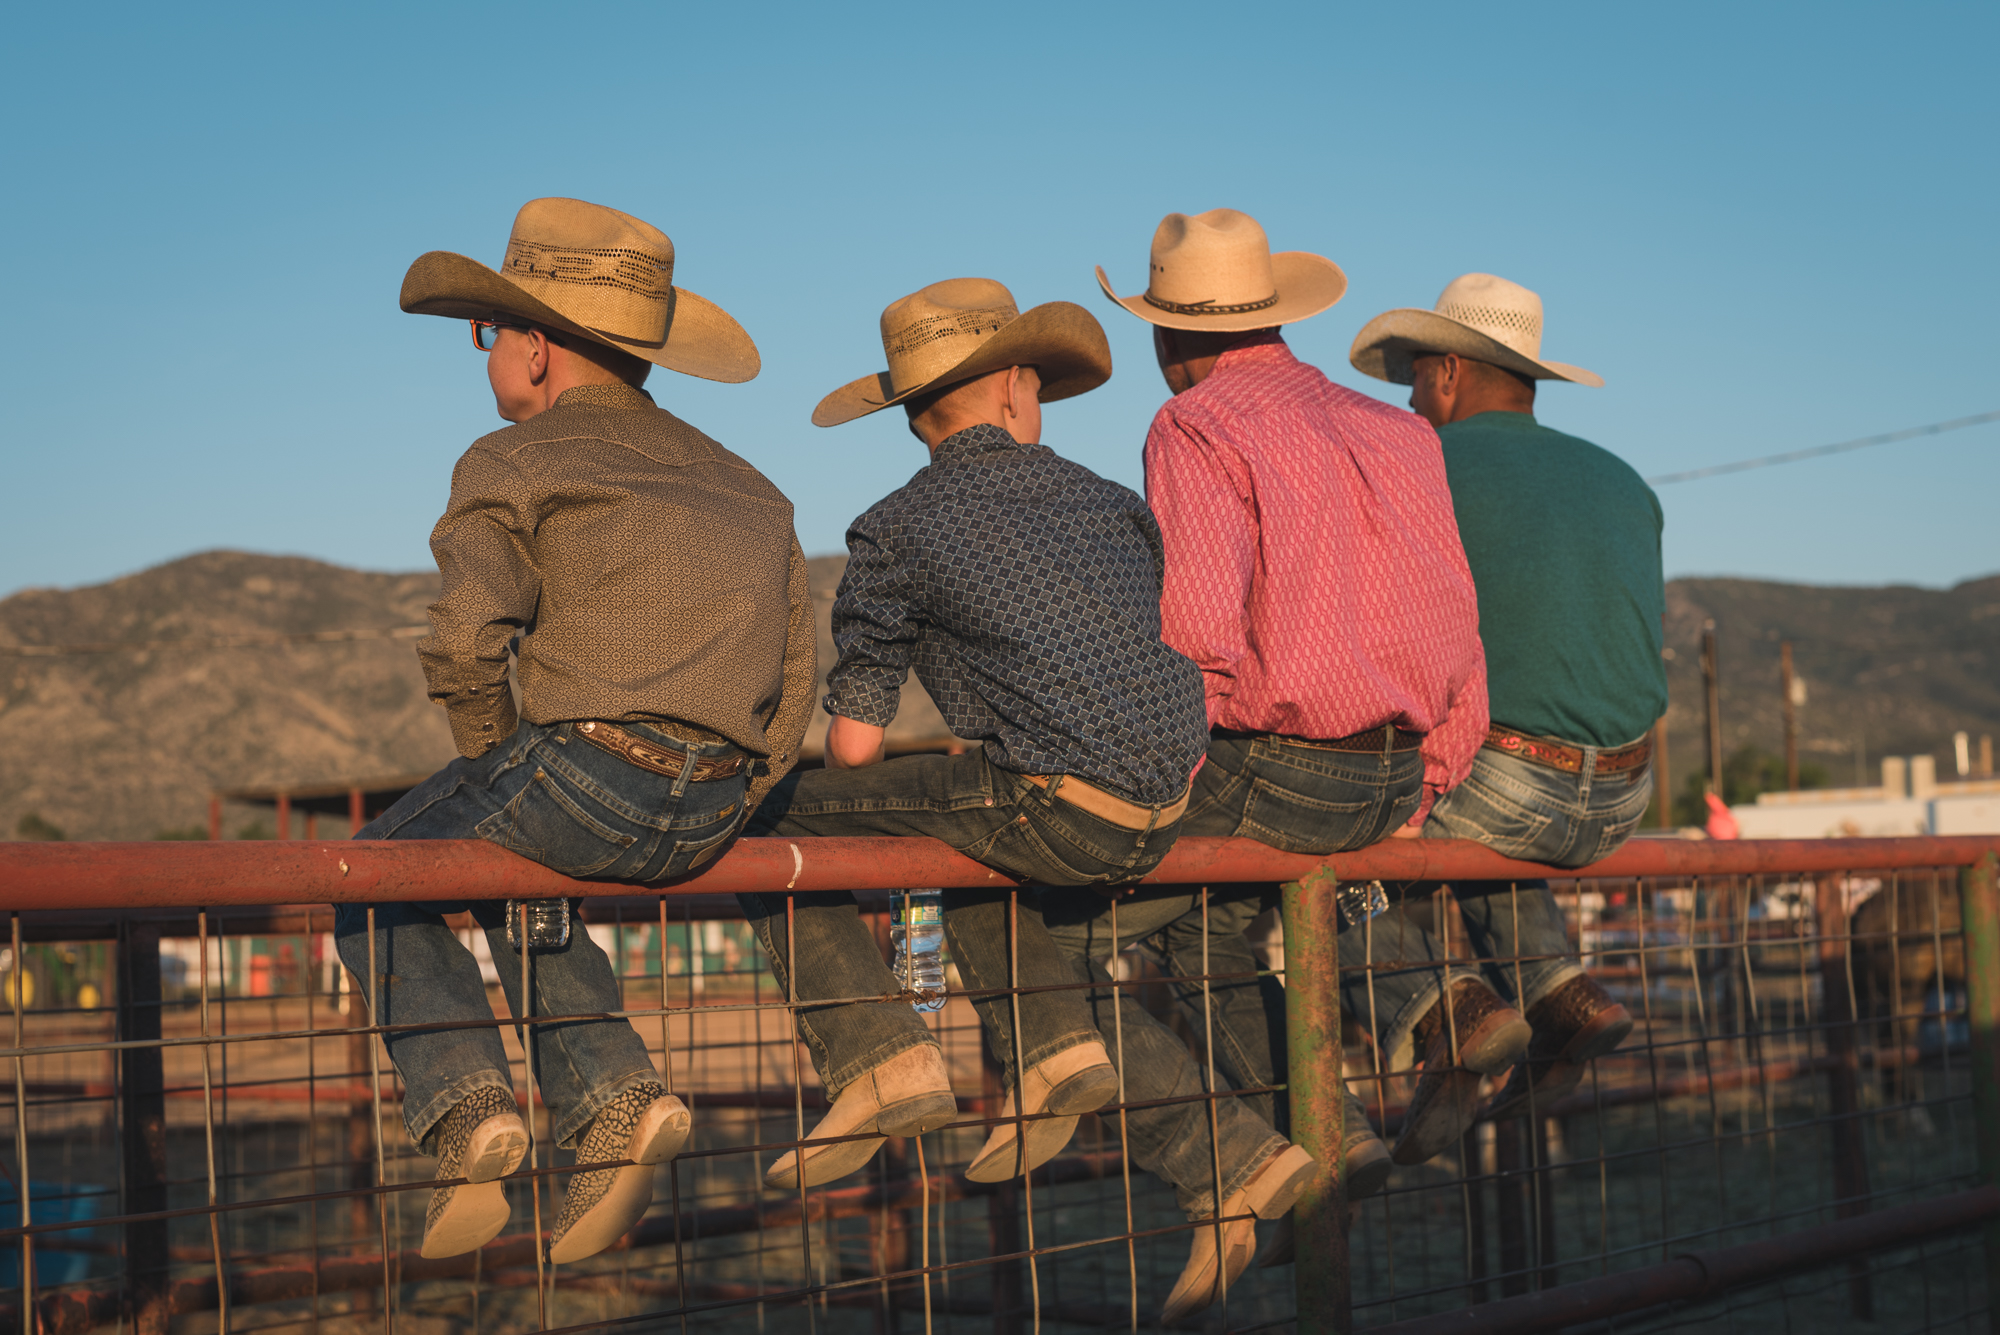 Rodeo_selects-4473.jpg